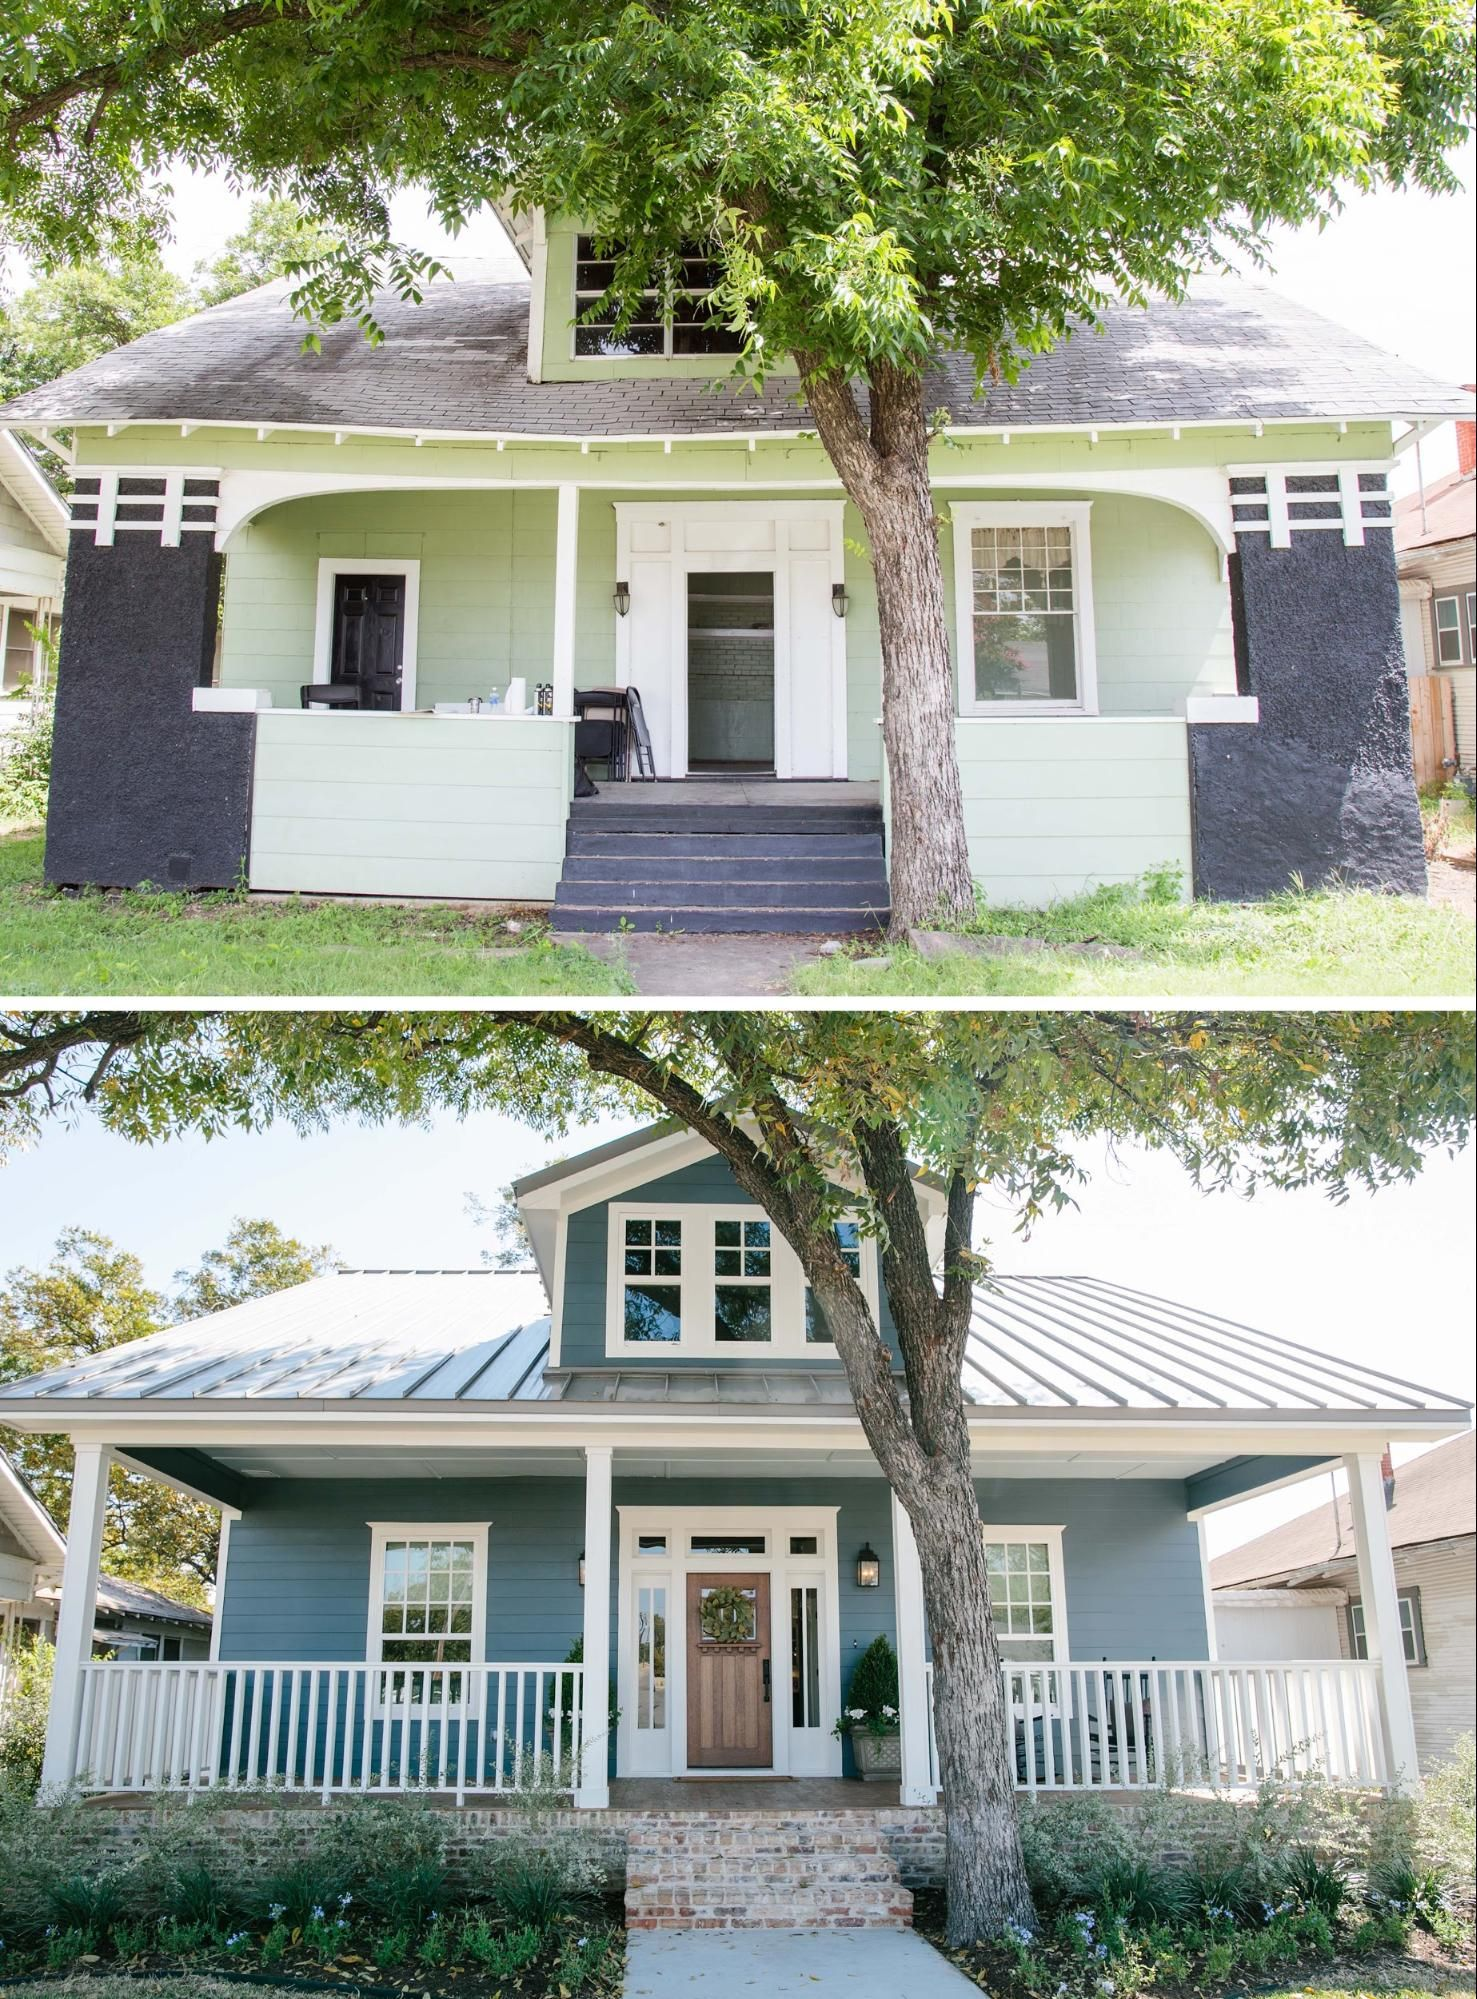 curb appeal and landscaping ideas from fixer upper craftsmen exterior paints pinterest. Black Bedroom Furniture Sets. Home Design Ideas